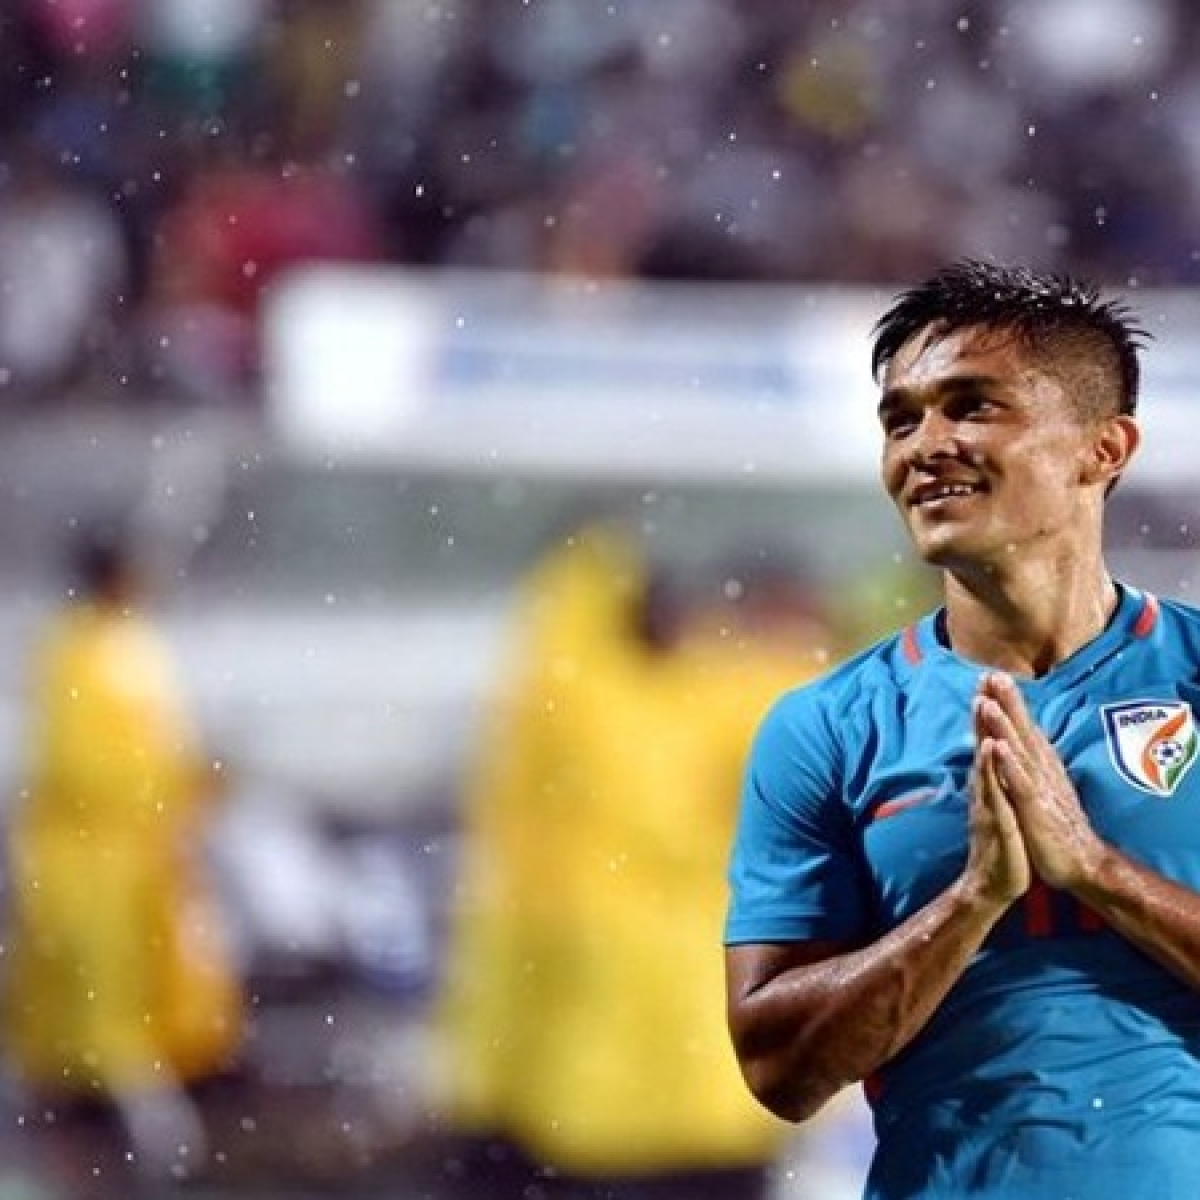 Sunil Chhetri joins Lionel Messi and others for FIFA's campaign against COVID-19